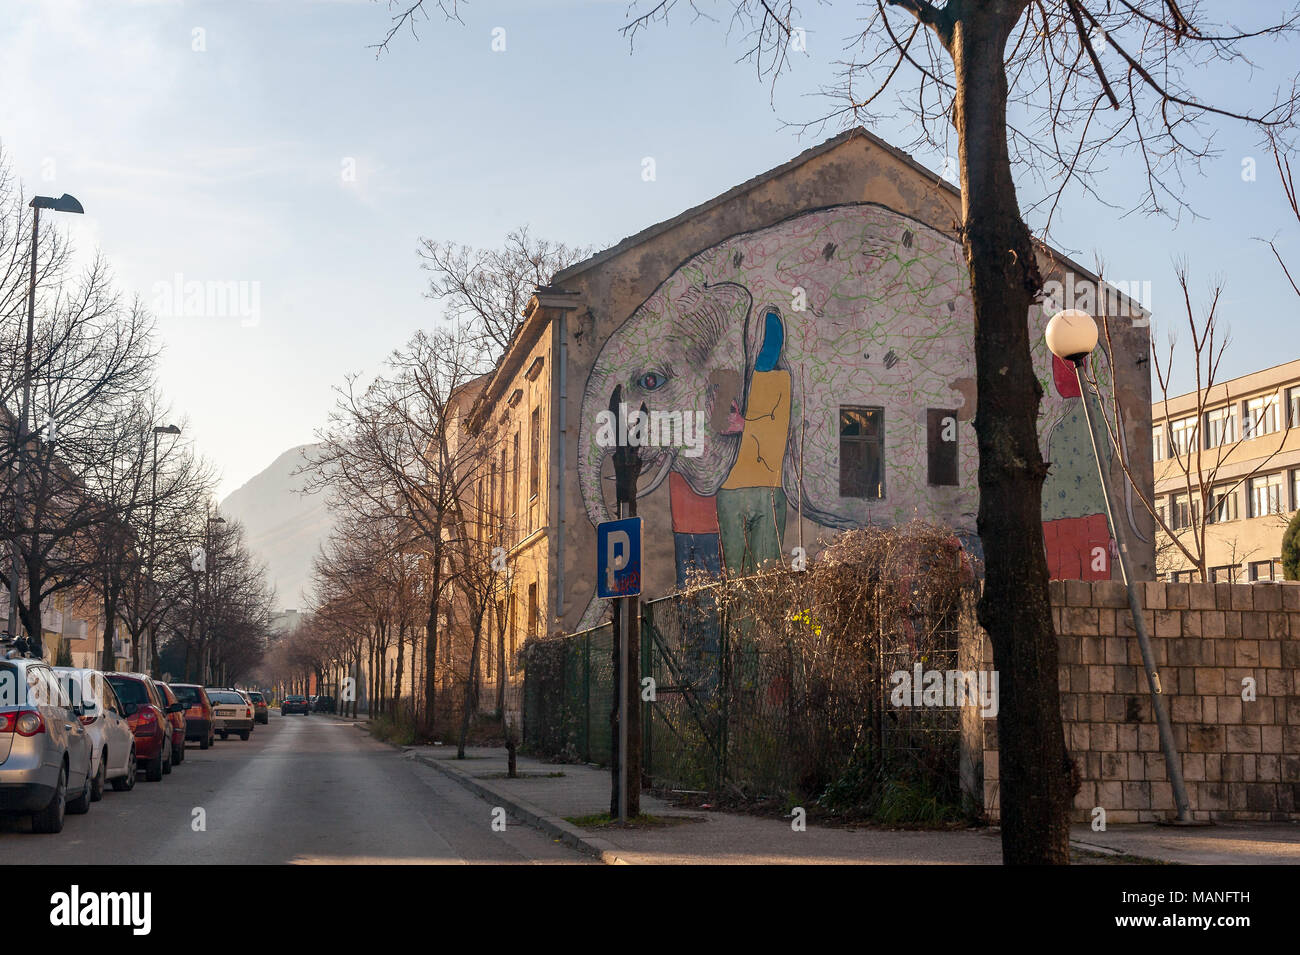 MOSTAR, BOSNIA - JAN 26, 2018: Street with mural painting in the Old Town, Mostar in Bosnia-herzegovina. The name Mostar itself means bridge-keeper - Stock Image